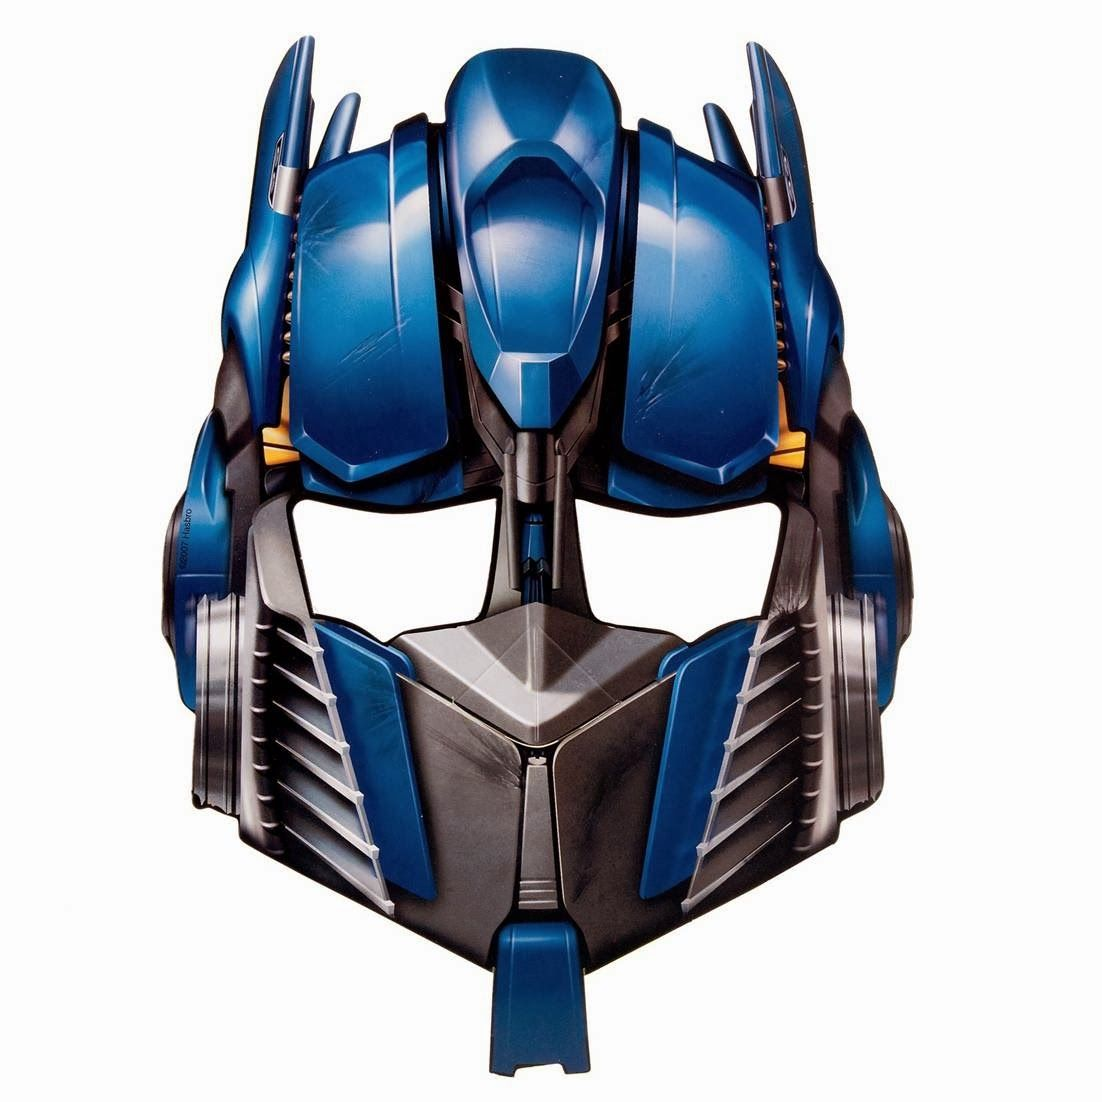 Transformers Free Printable Masks